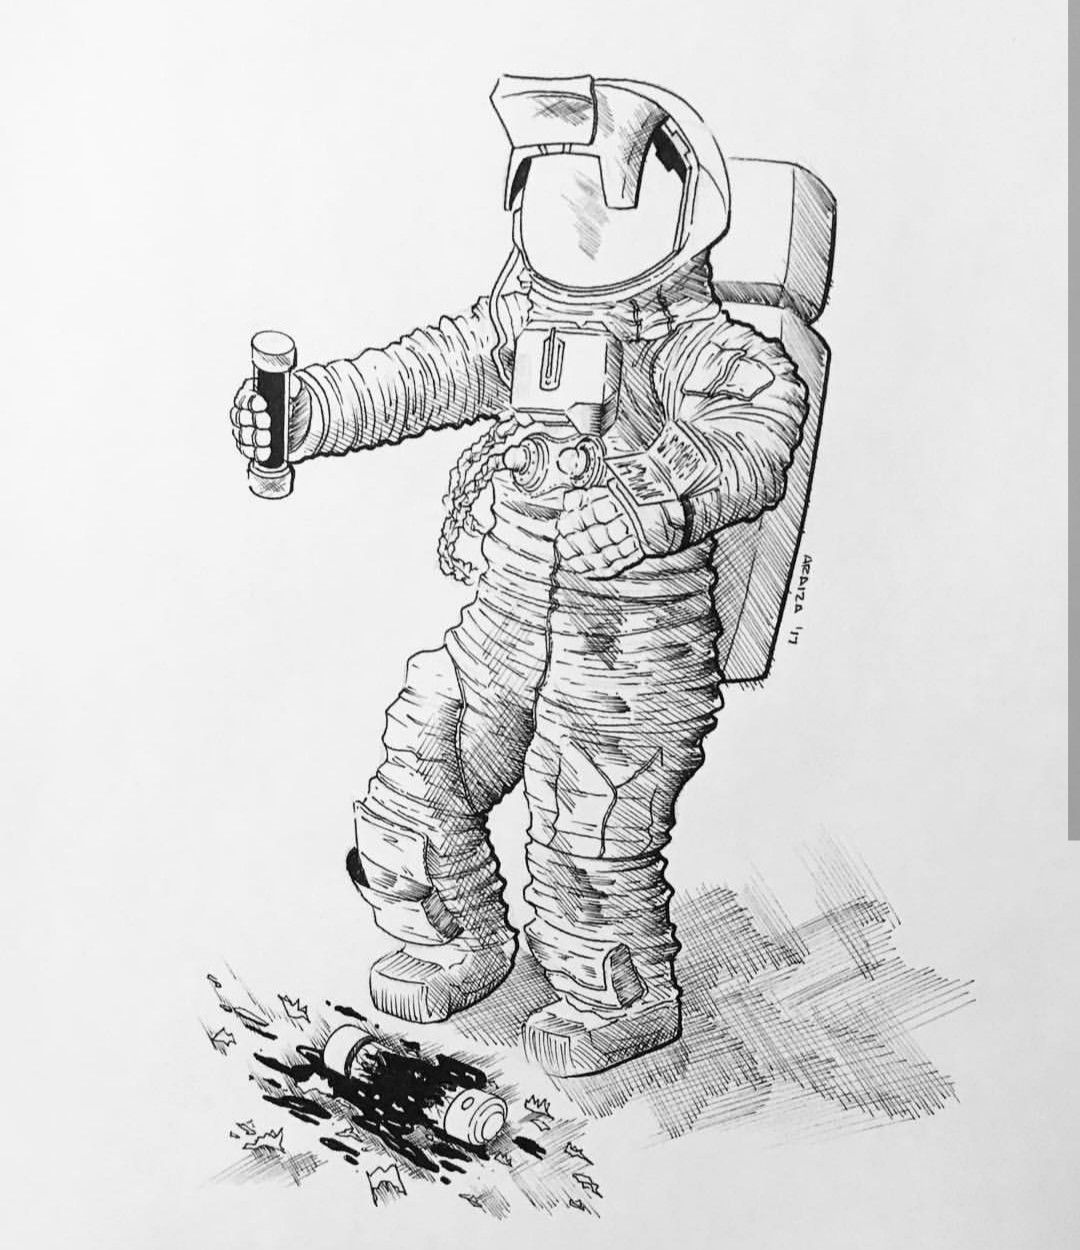 Astronaut drawing Instagram artwoonz draw draws